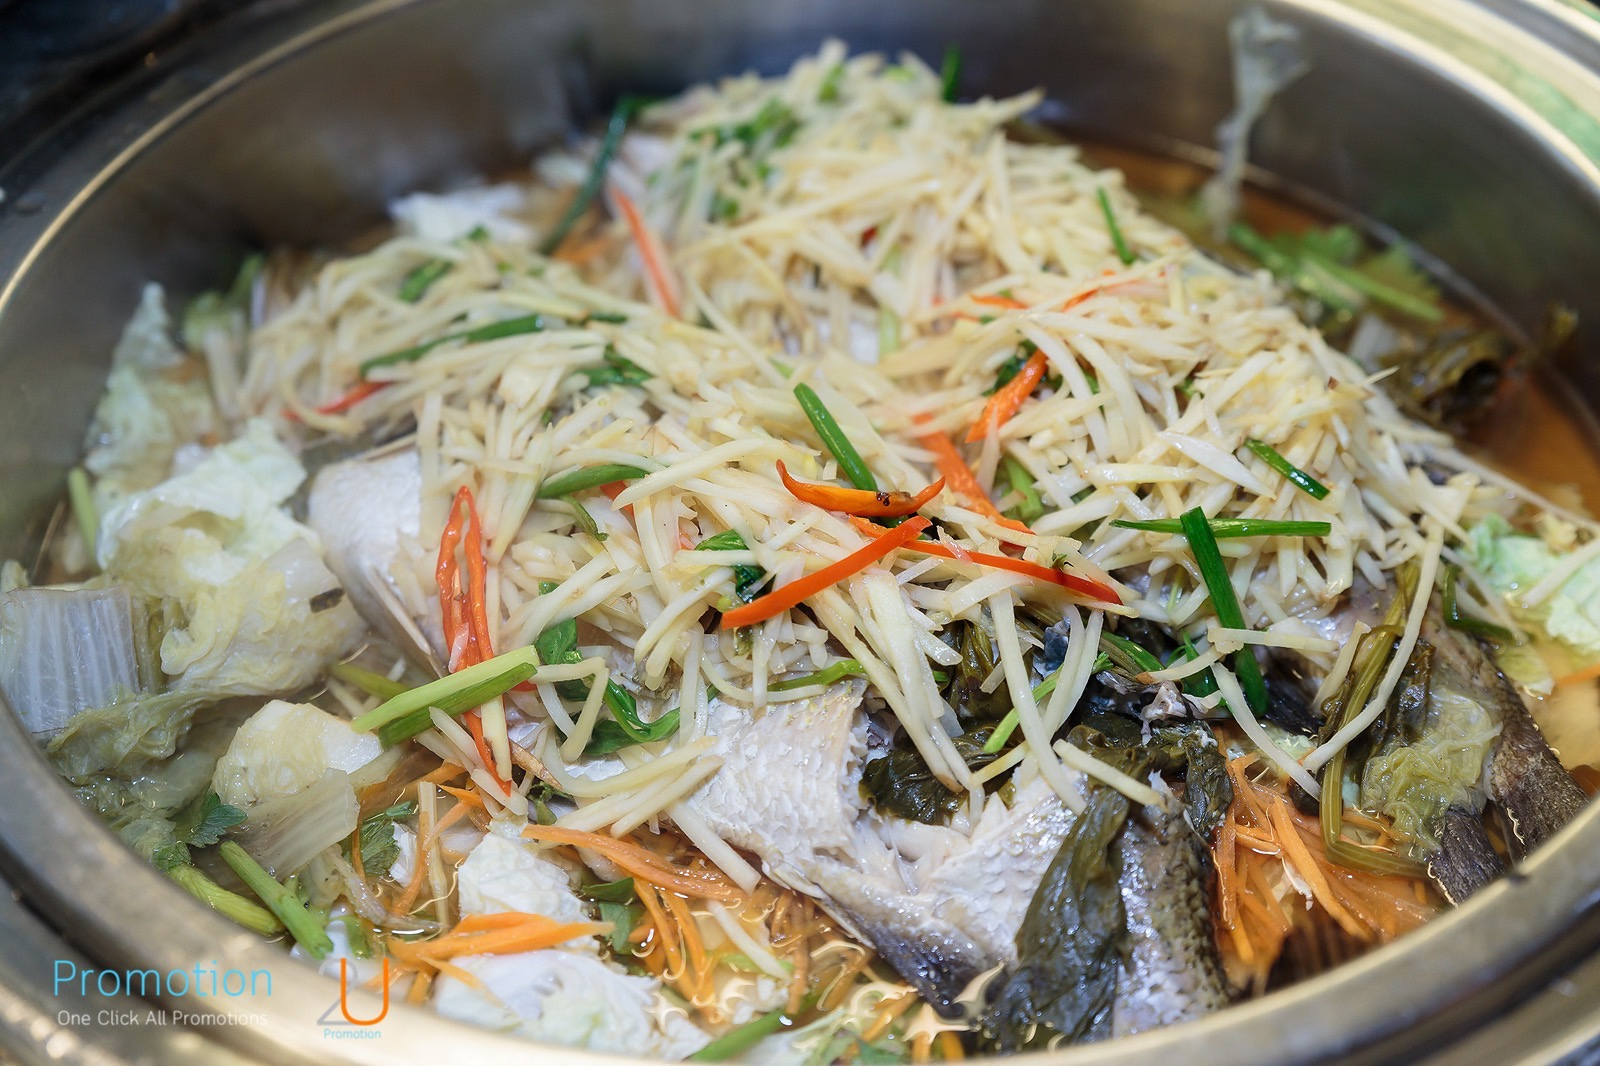 Review promotion muangthong koongtung bufft at the suare novotel impact P132